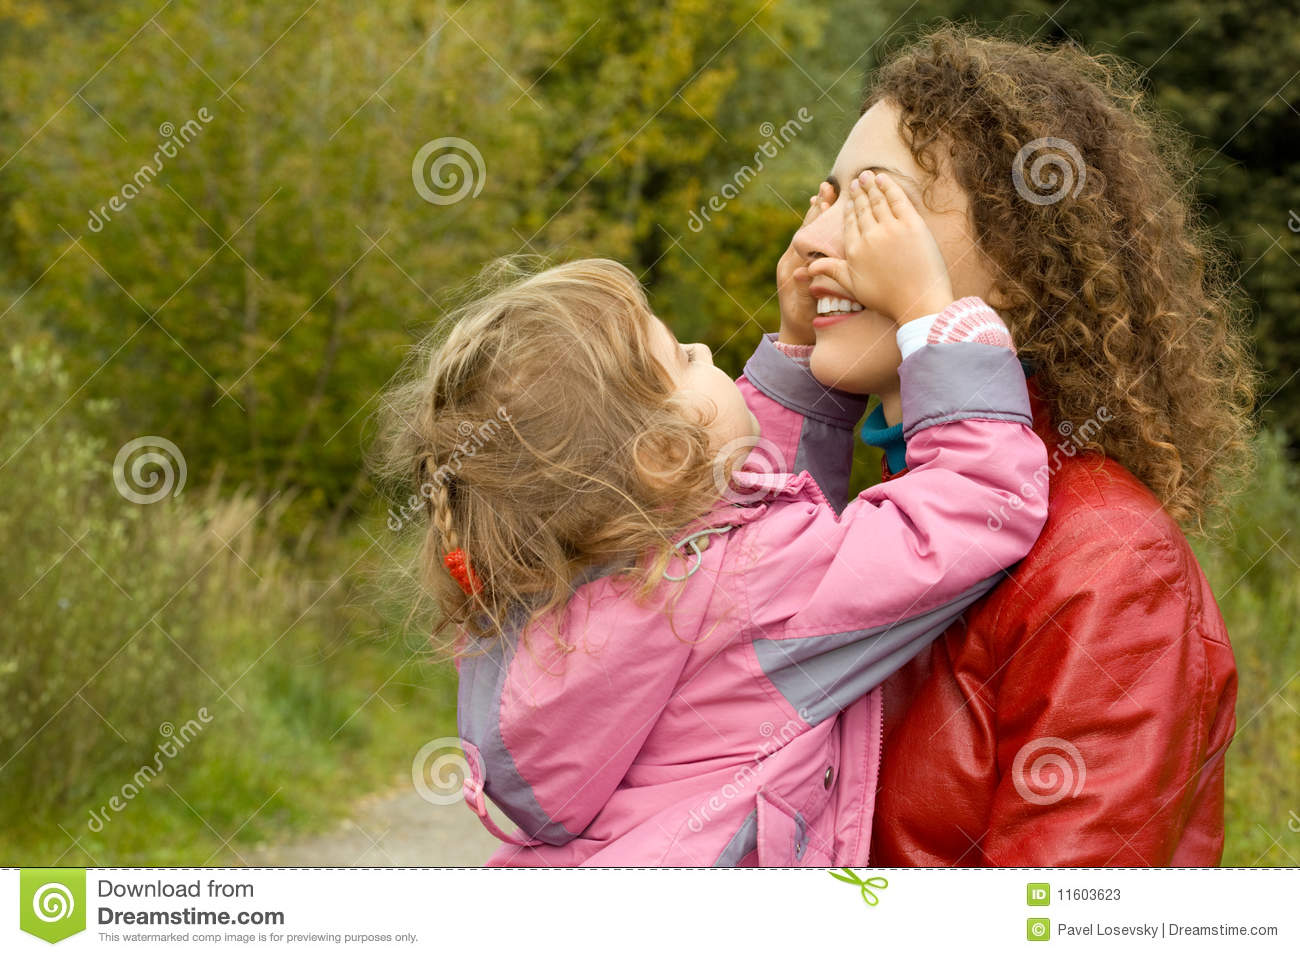 Woman and girl playing in garden, girl closes eyes